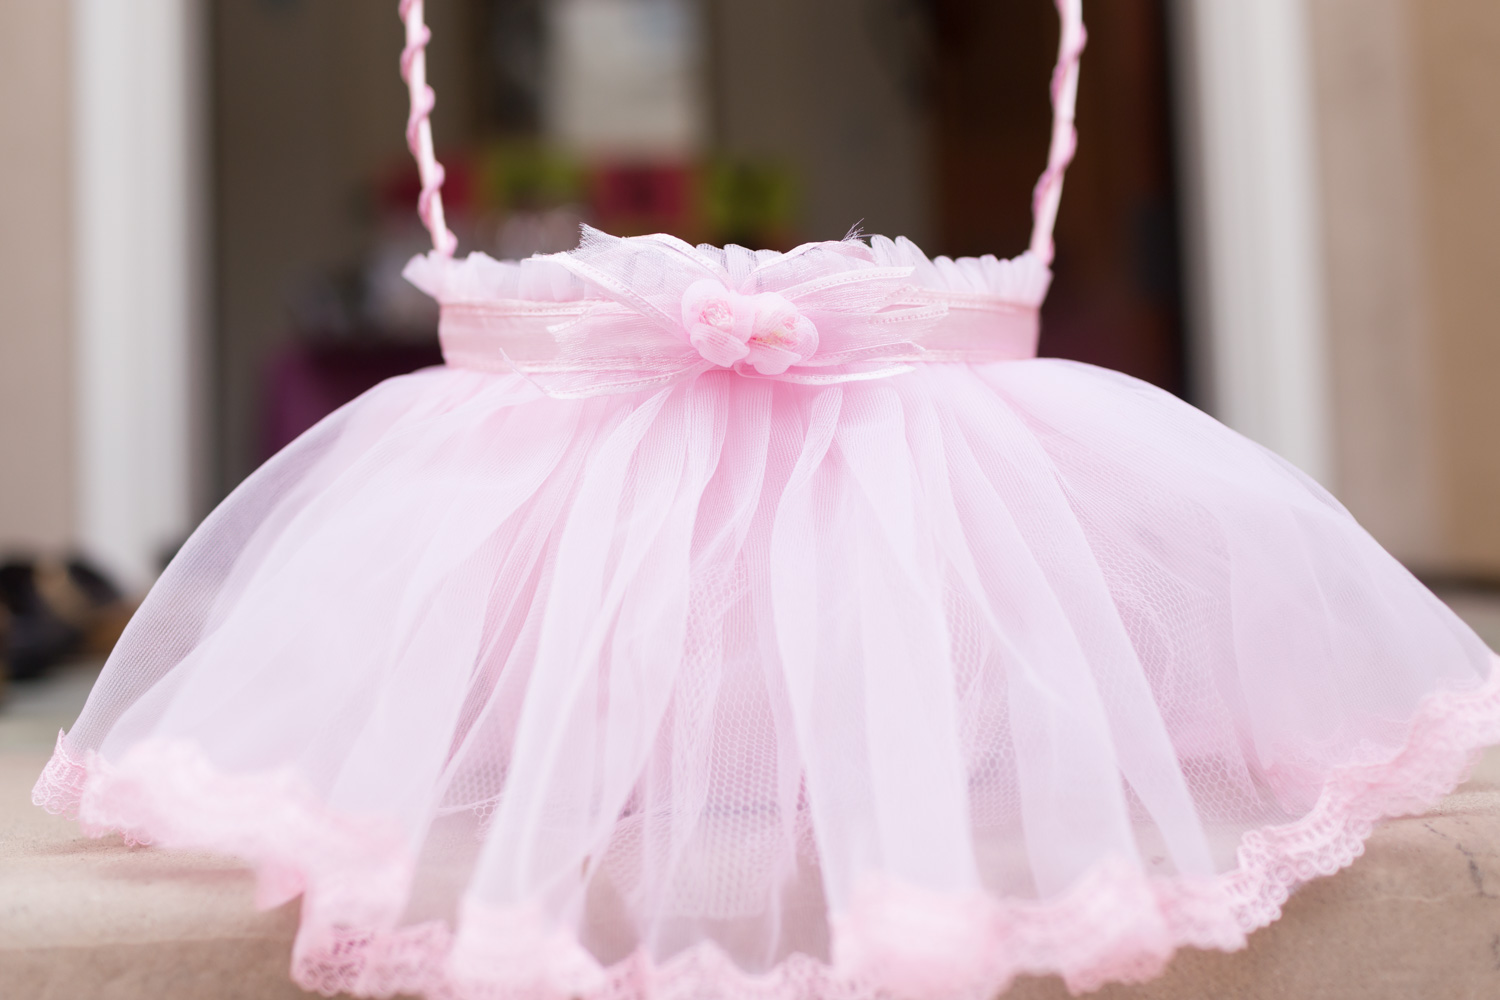 Cute Baskets For Baby Shower, Pink Tulle Ballerina Skirt Decorations For A  Girl Baby Shower ...